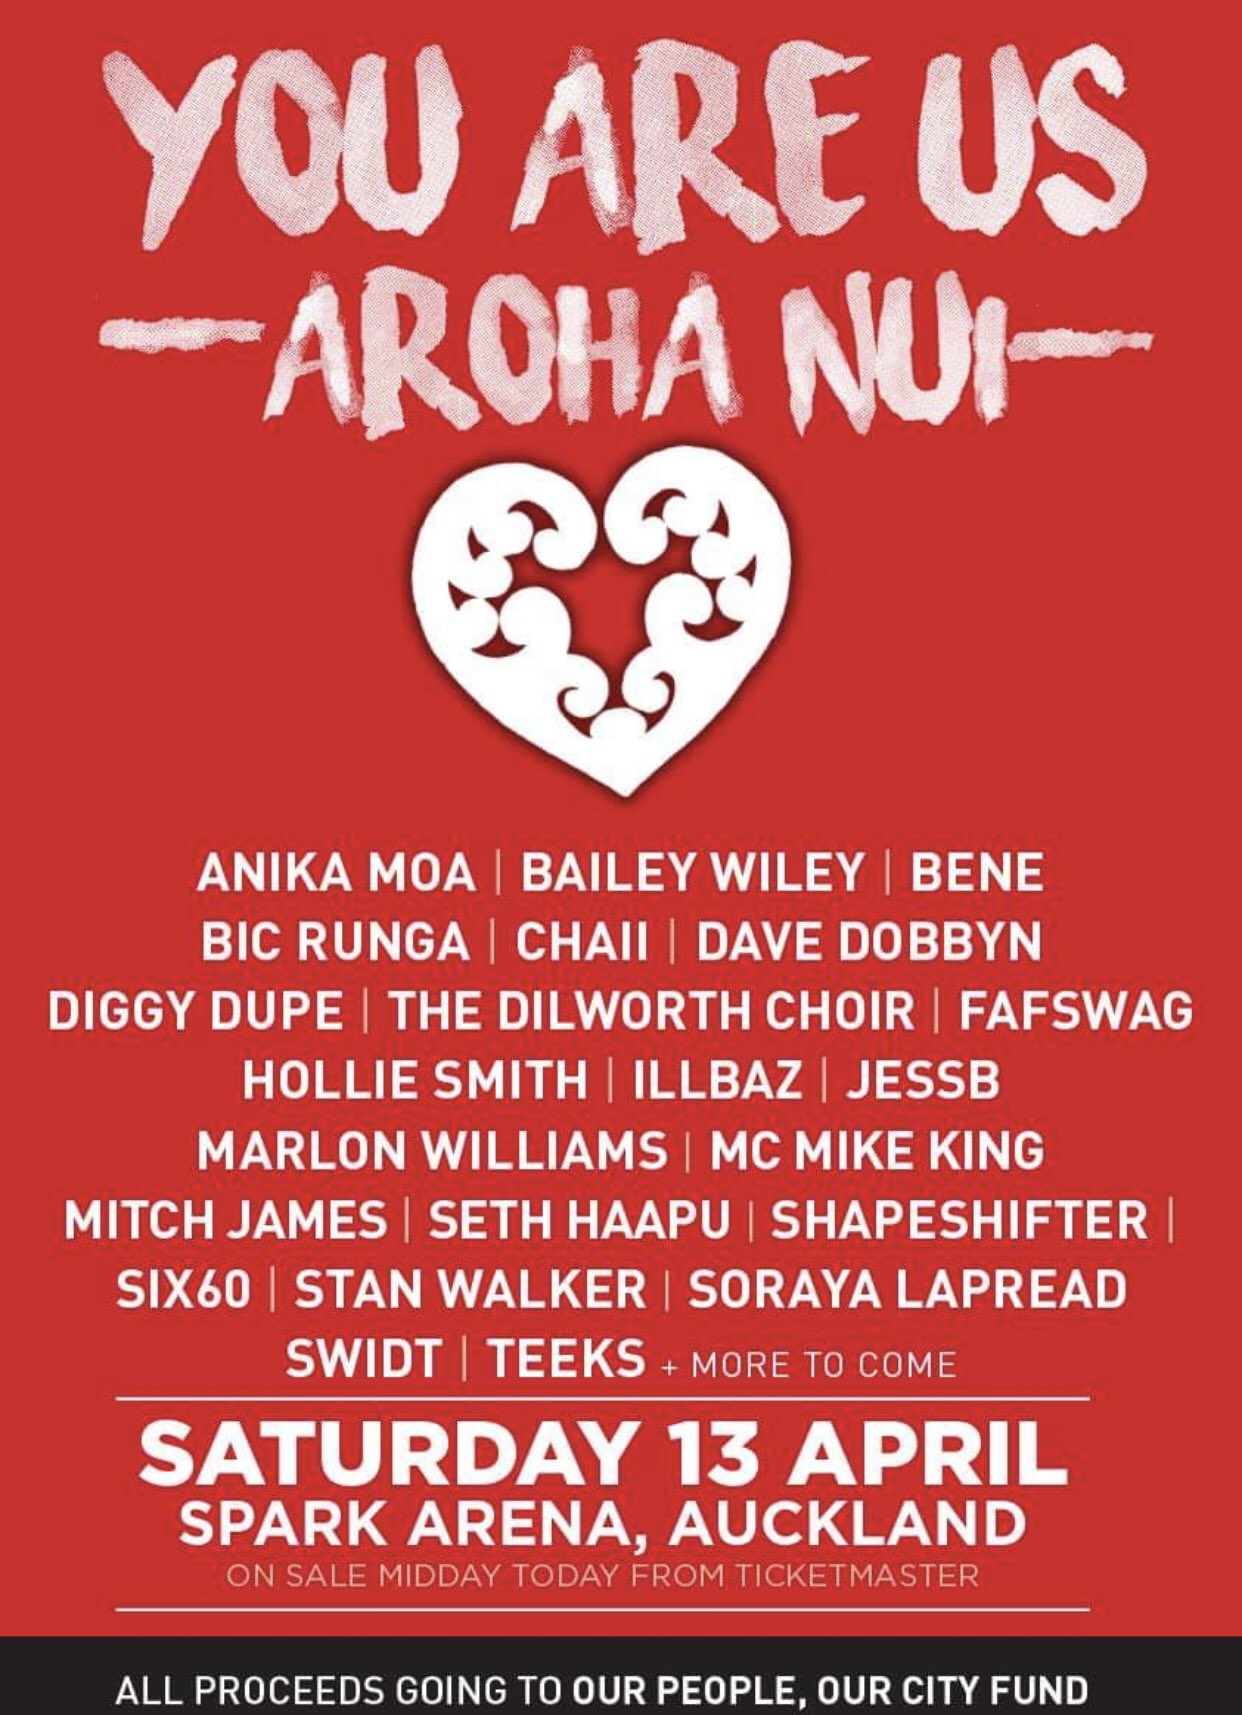 saturdays-gig-will-have-all-the-feels-im-there-mixing-my-homies-shapeshifternz-youareus-https-t-co-zjhky1ablh